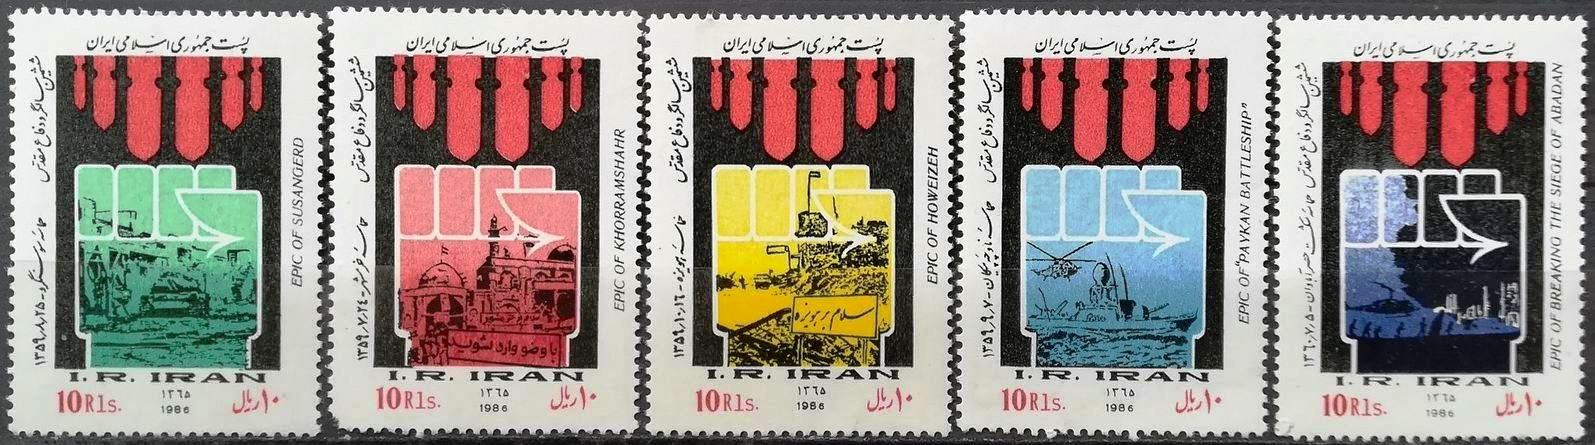 Iran 1986 Stamps Beginning Of the Iraq War